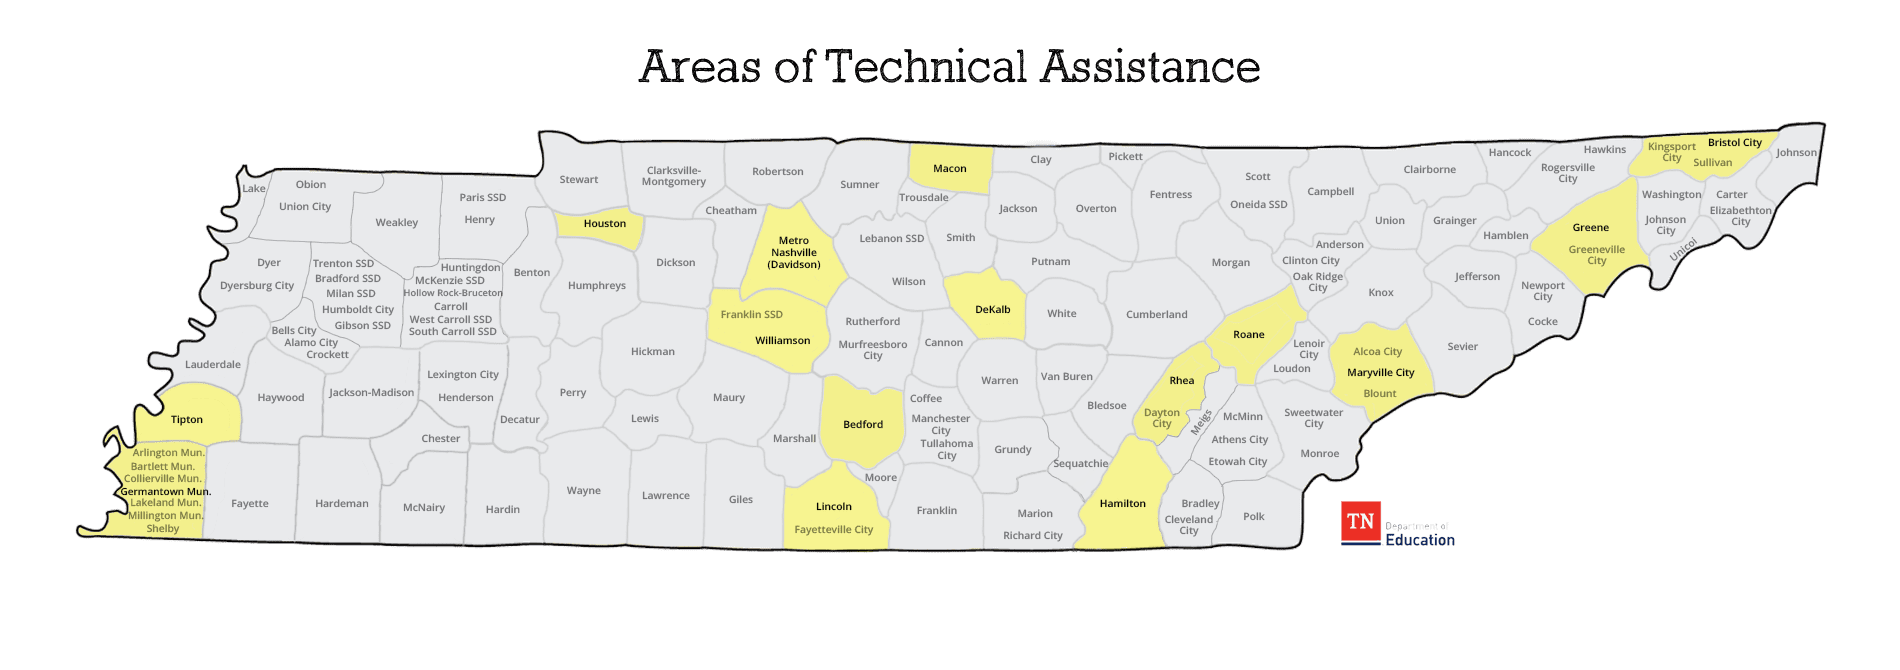 This Areas of Technical Assistance map shows which counties are recieving technical assistance services. Currently these counties are Germantown, Houston, Bedford, Macon, Sequatchie, Rhea, Roane, Maryville City, Greene, Sullivan, and Bristol City.